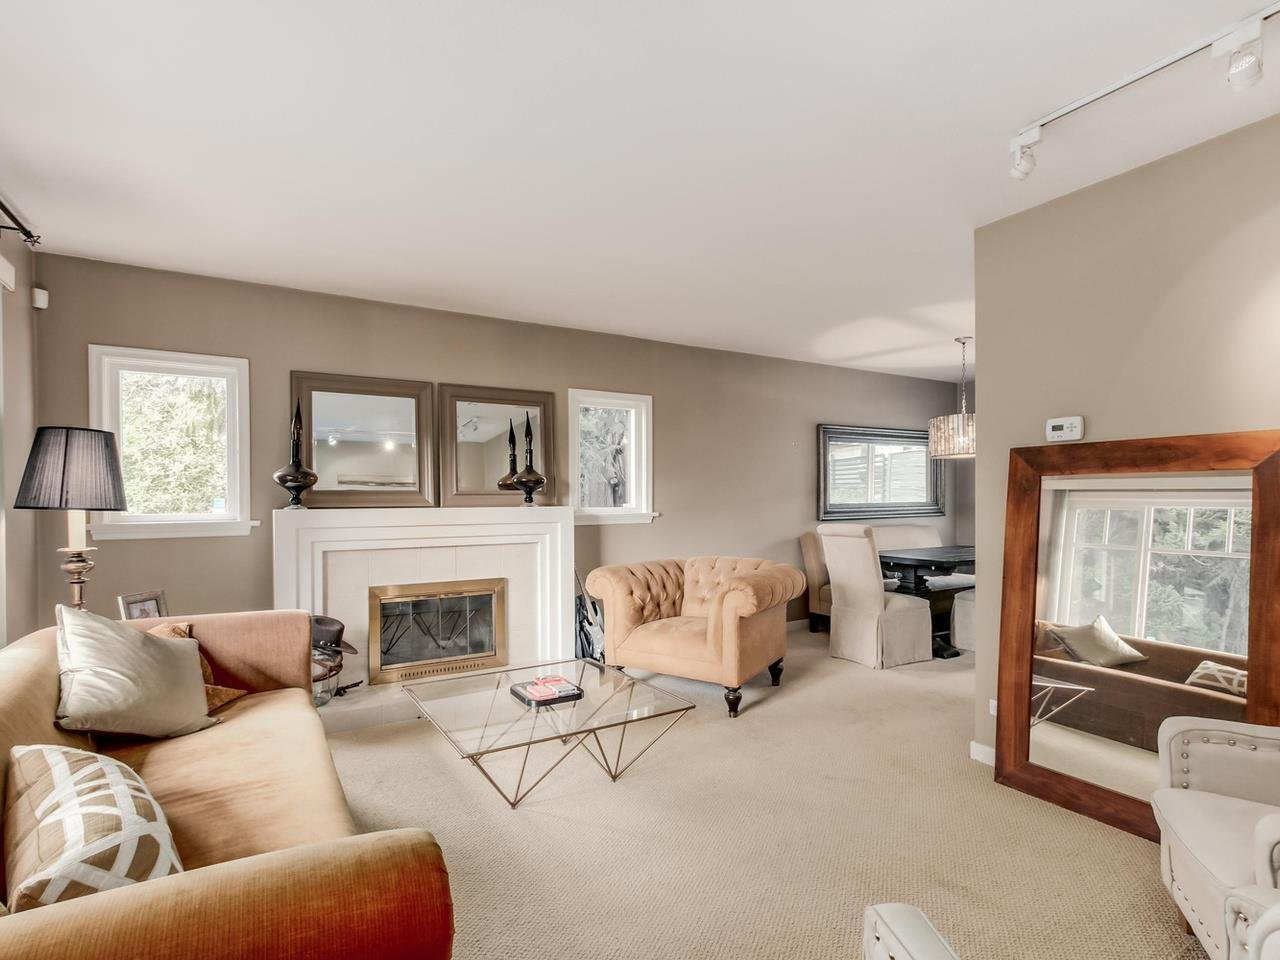 R2078859 - 300 E 25TH STREET, Upper Lonsdale, North Vancouver, BC - House/Single Family